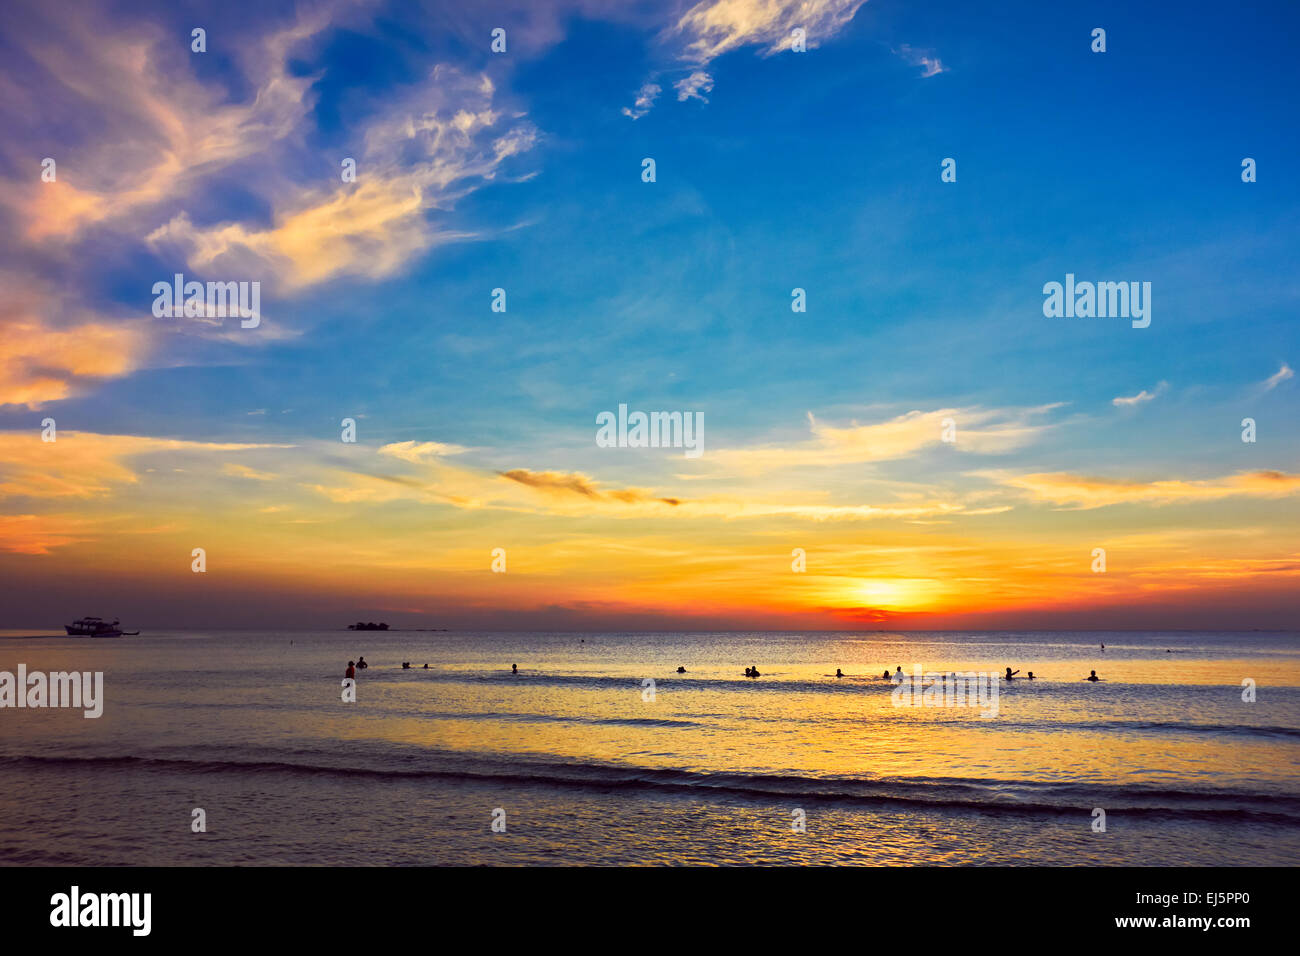 Colorful sunset on Phu Quoc island. Kien Giang Province, Vietnam. - Stock Image